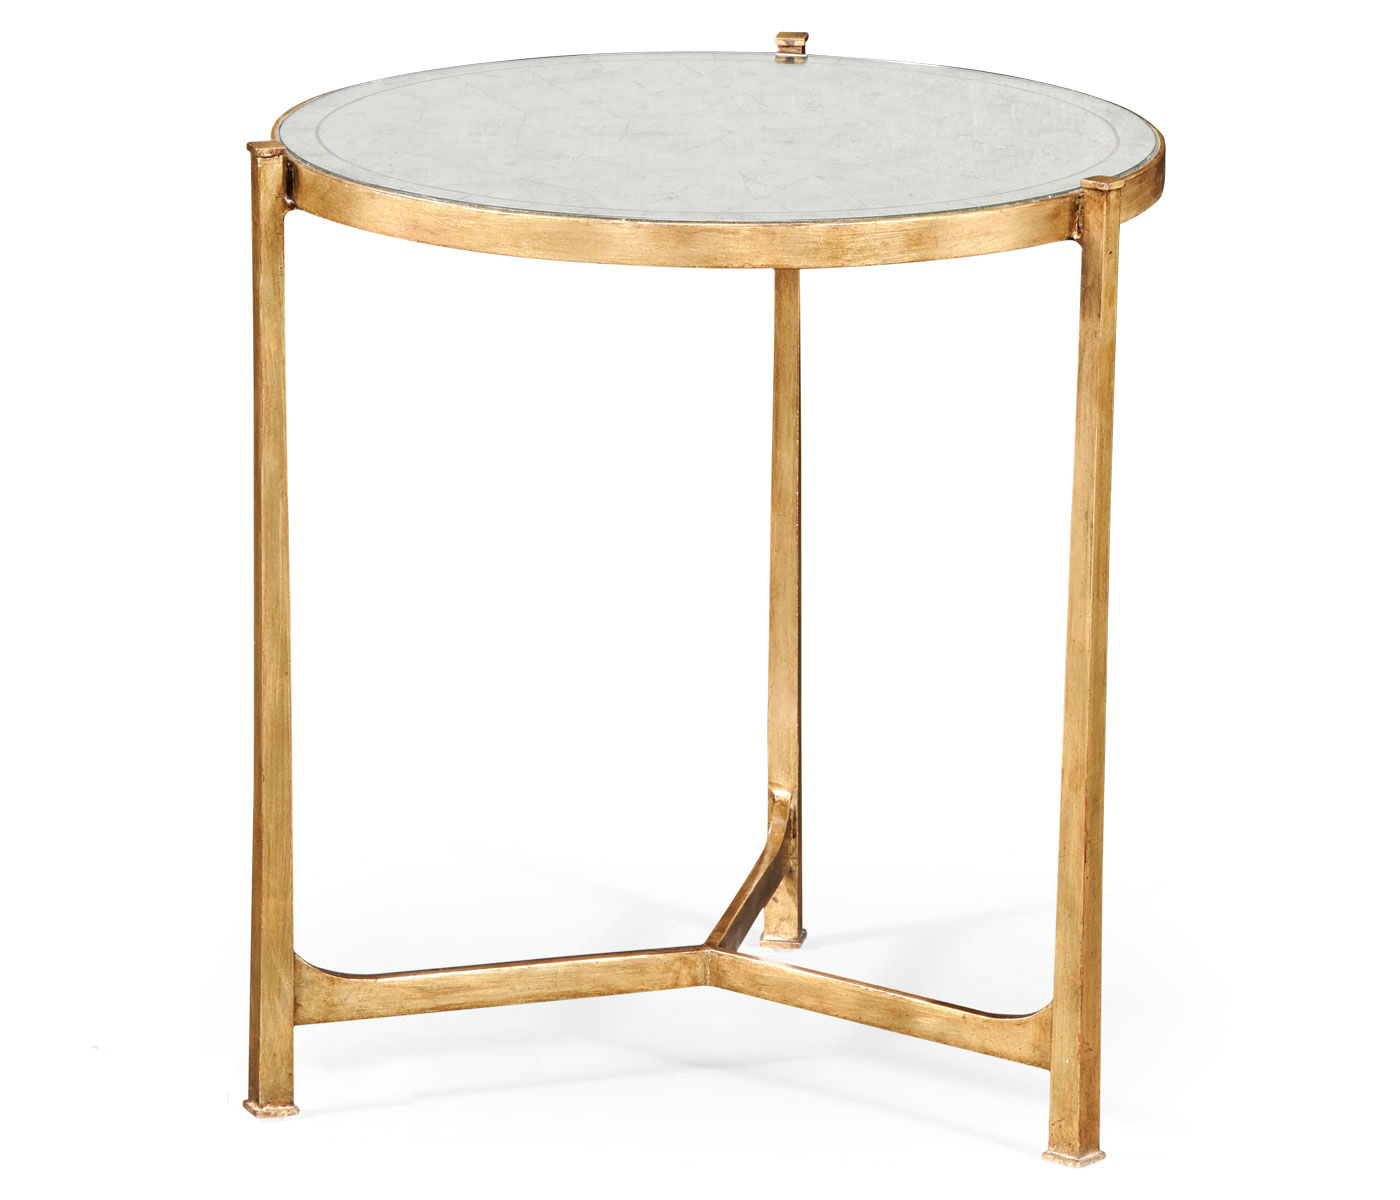 legs top gold hire pool first target game squash cup white cricket standing coast wilko table medal concacaf periodic lamp runner lamps shades gumtree grazing dining marble accent